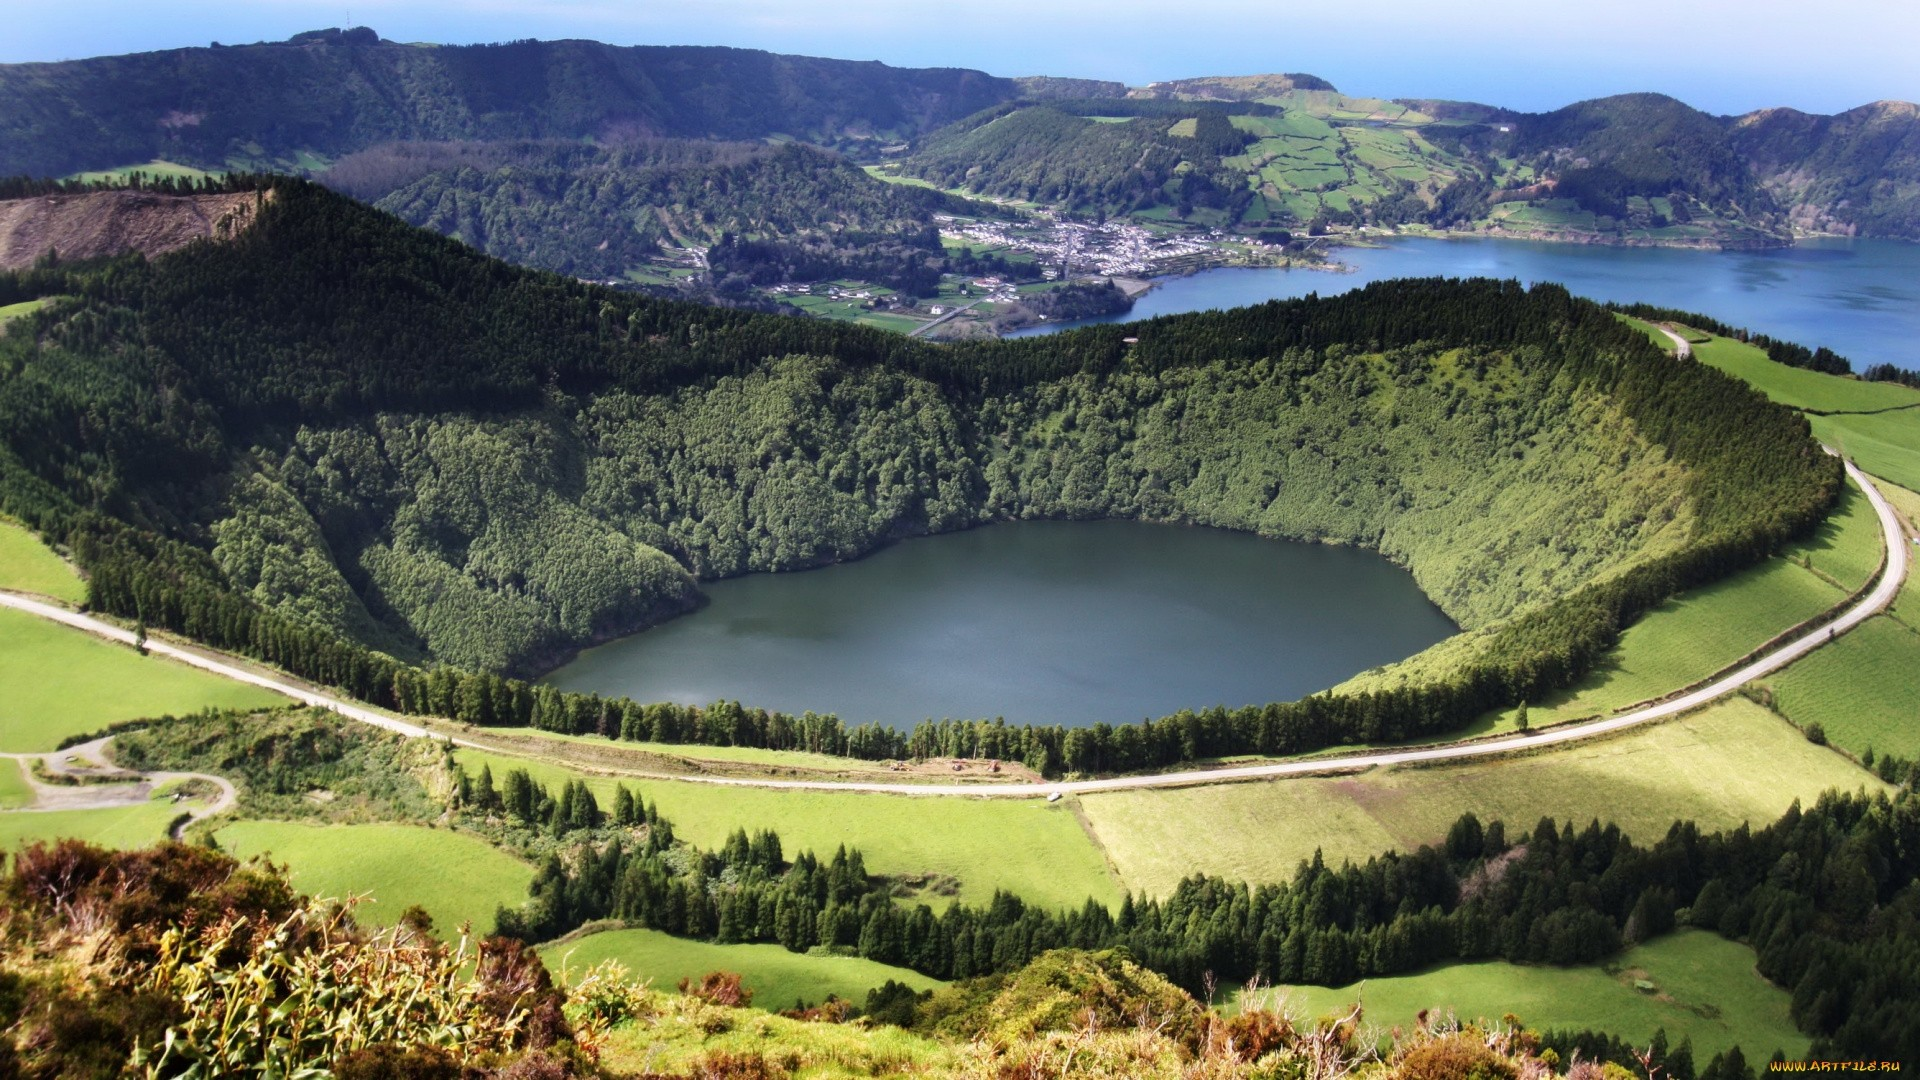 Azores Islands Background